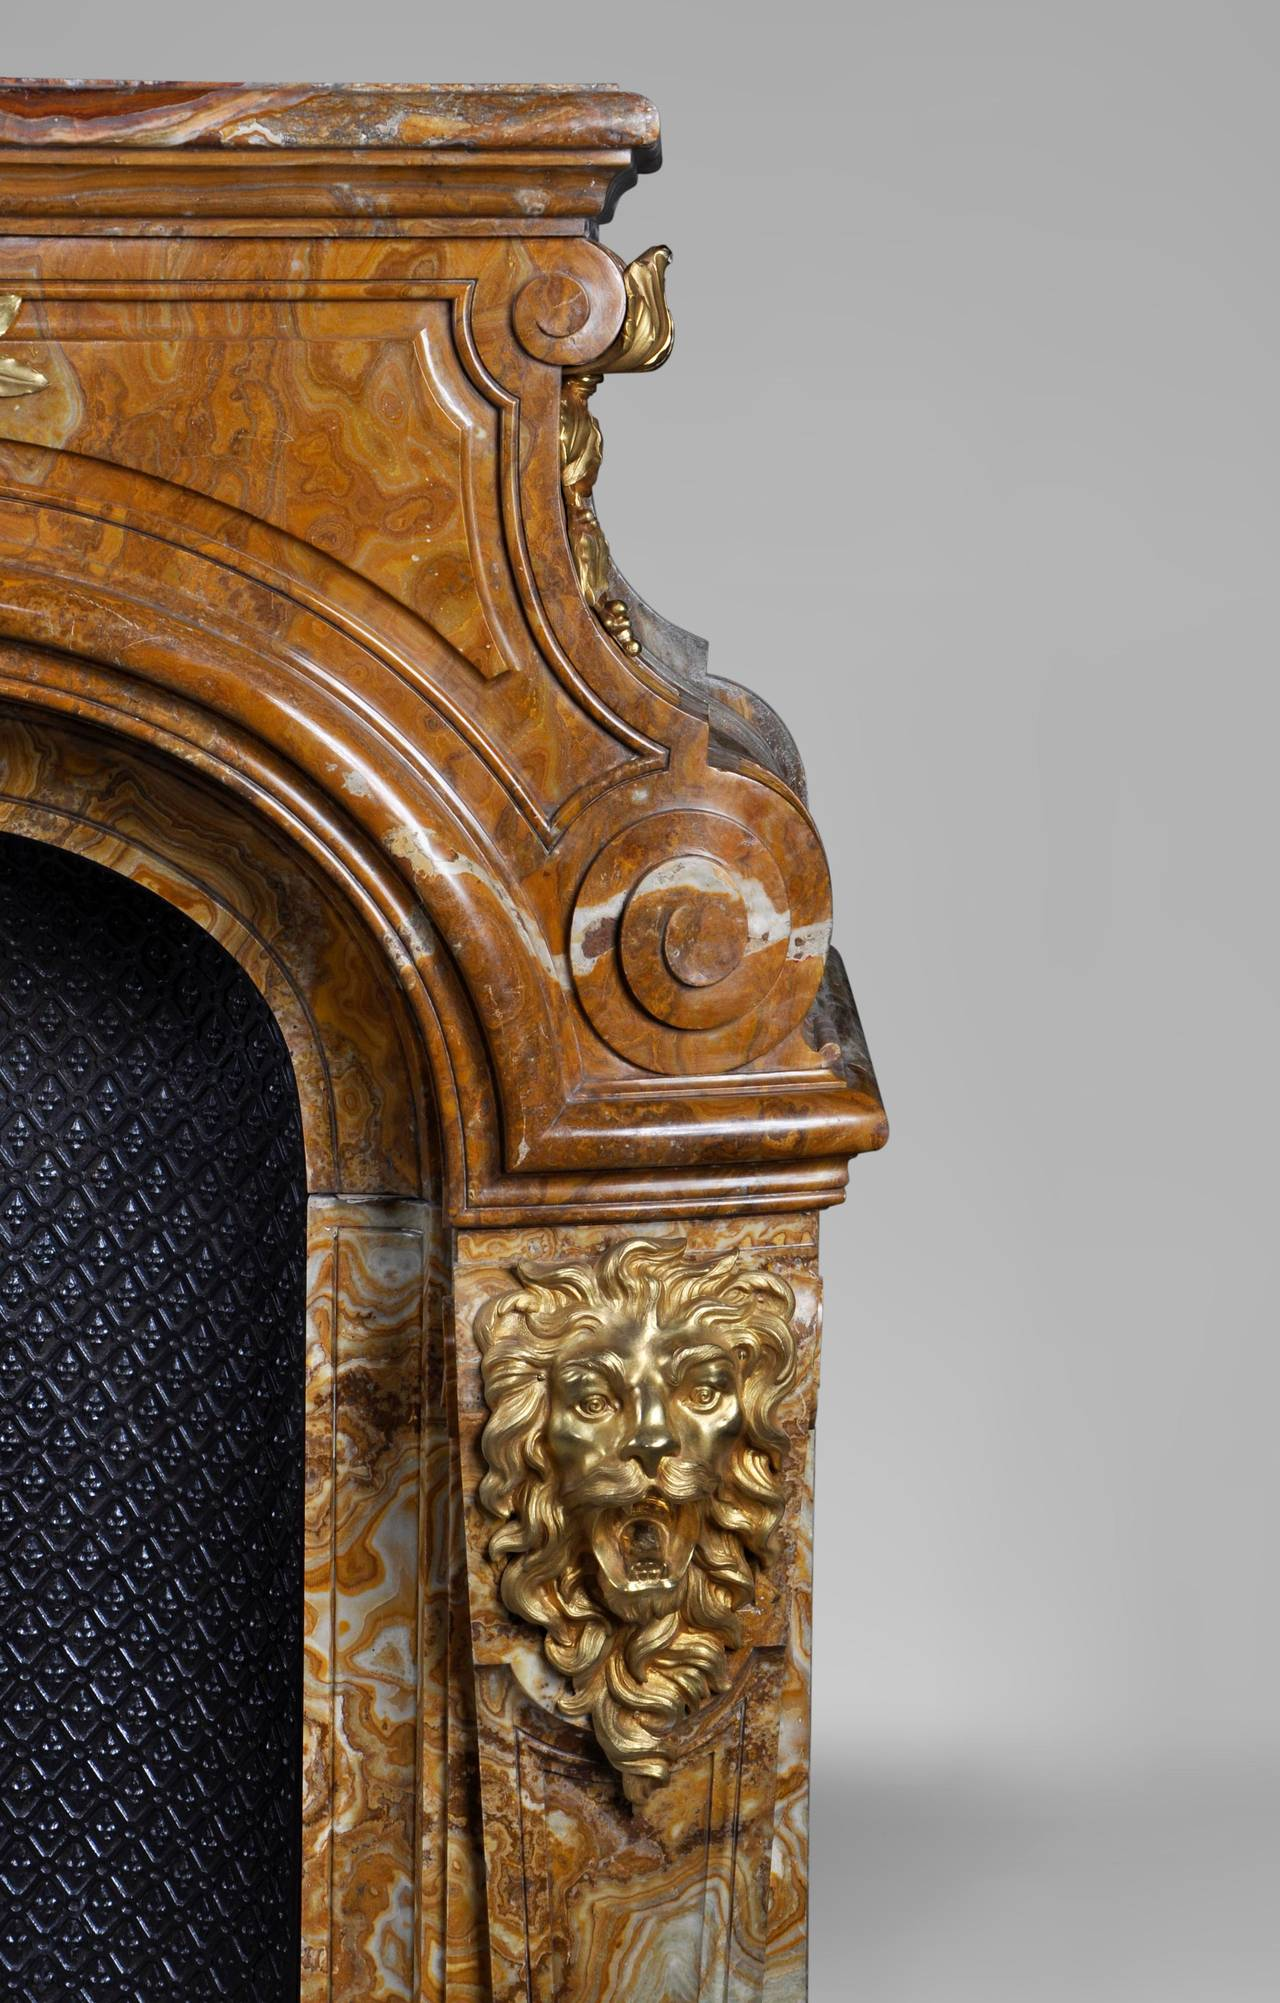 Louis XIV Style Fireplace in Alabastro di Busca with Gilded Bronze 7